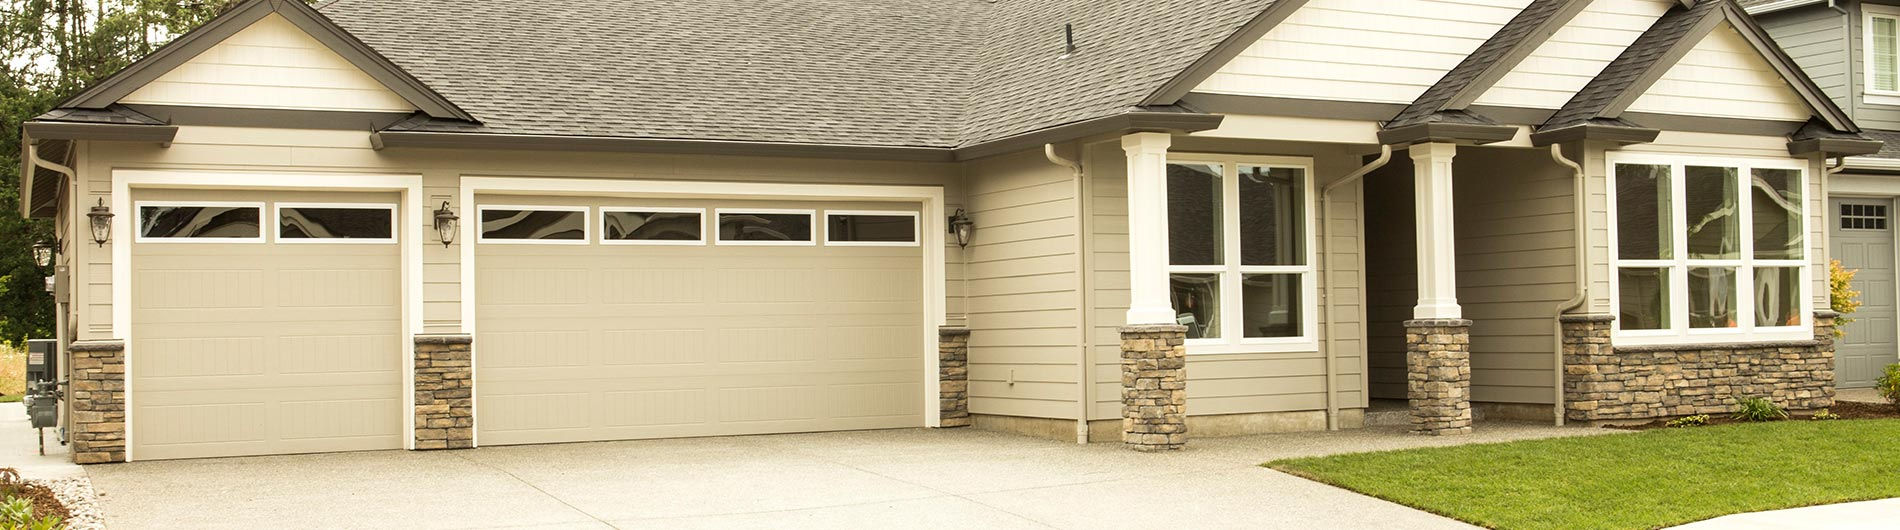 Steel Garage Door Sonoma Ranch Taupe ClearIV & Steel Garage Door Sonoma Ranch Taupe ClearIV - Precision Doors of ...